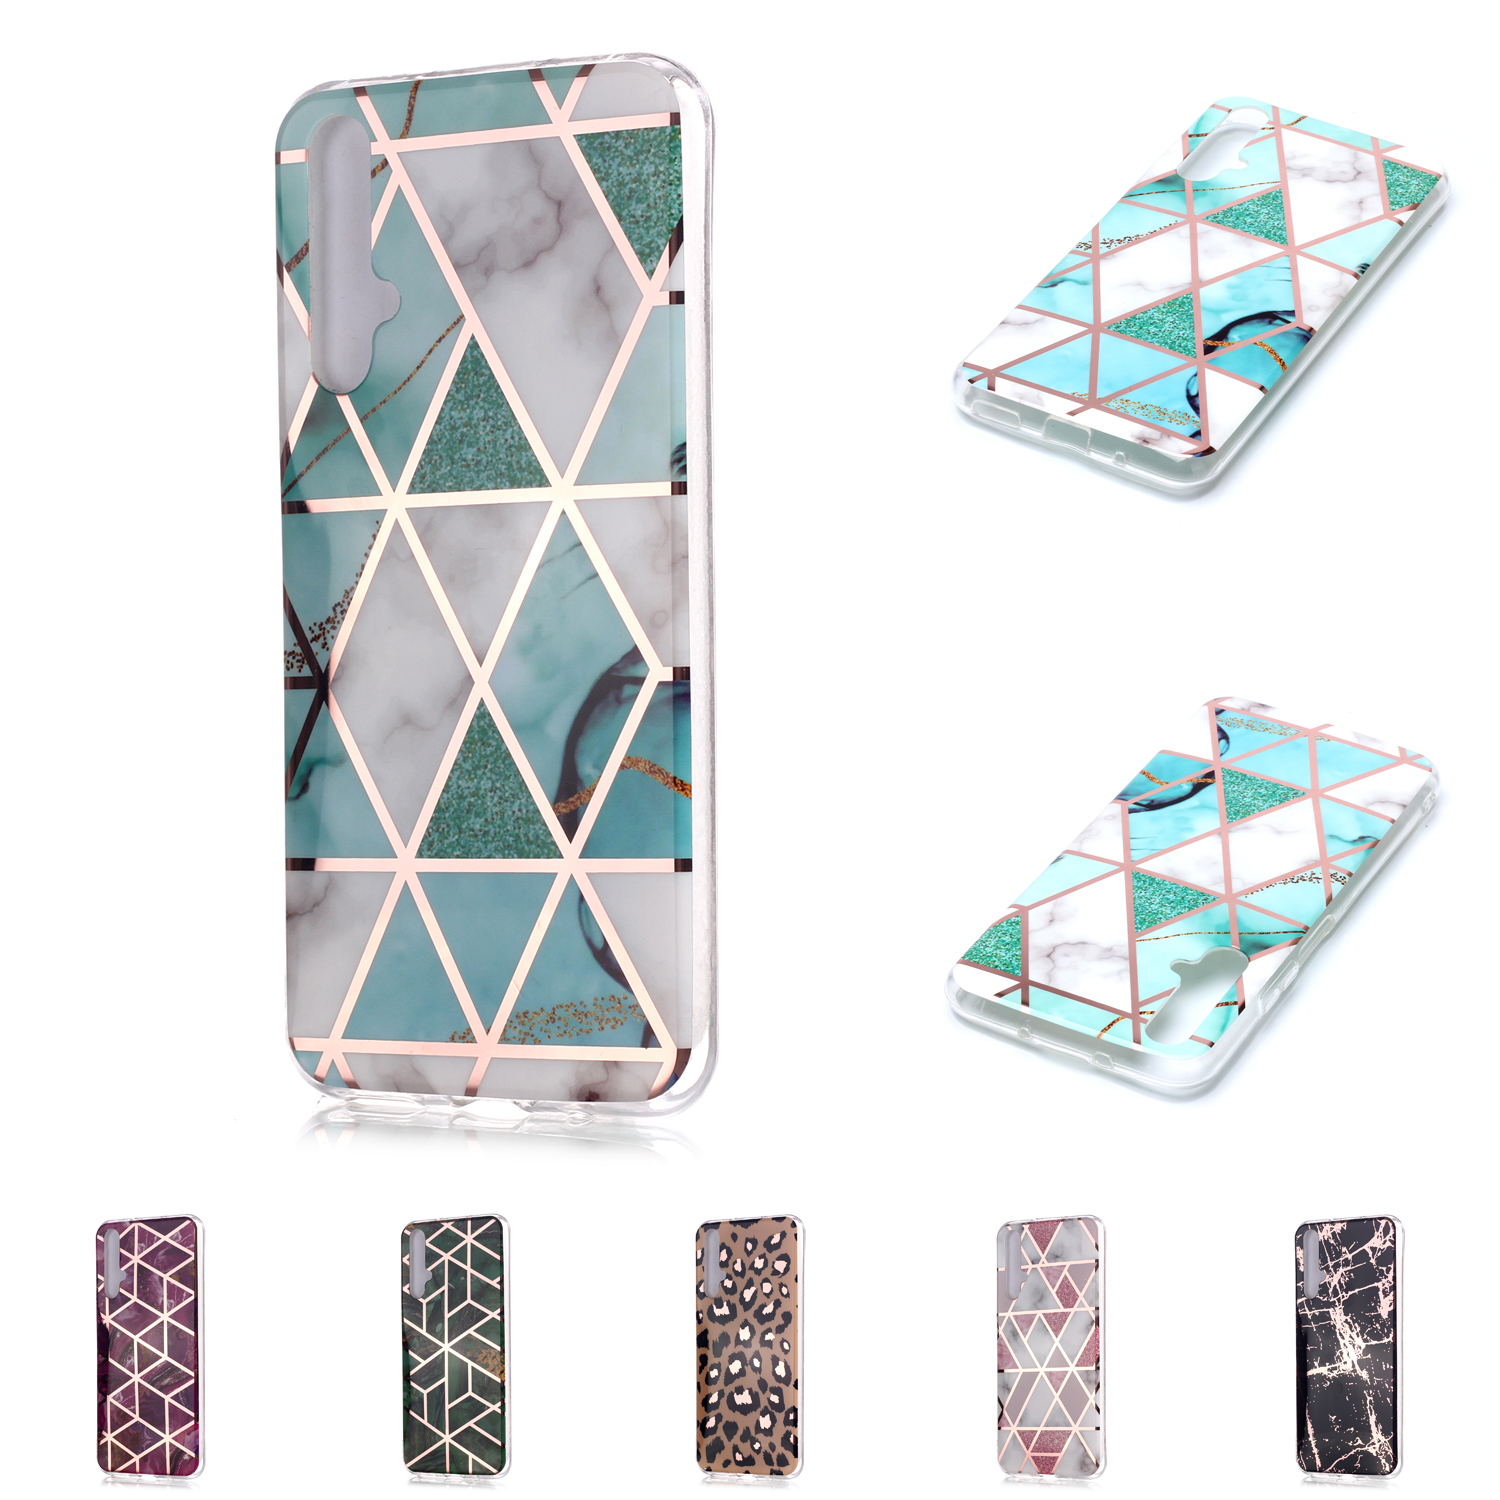 Rose Gold Soft TPU Cover For cellular <font><b>Samsung</b></font> <font><b>A30</b></font> Coque Back Covers sFor Cellular <font><b>Samsung</b></font> Galaxy phone case A20 A20E A20S Casa image